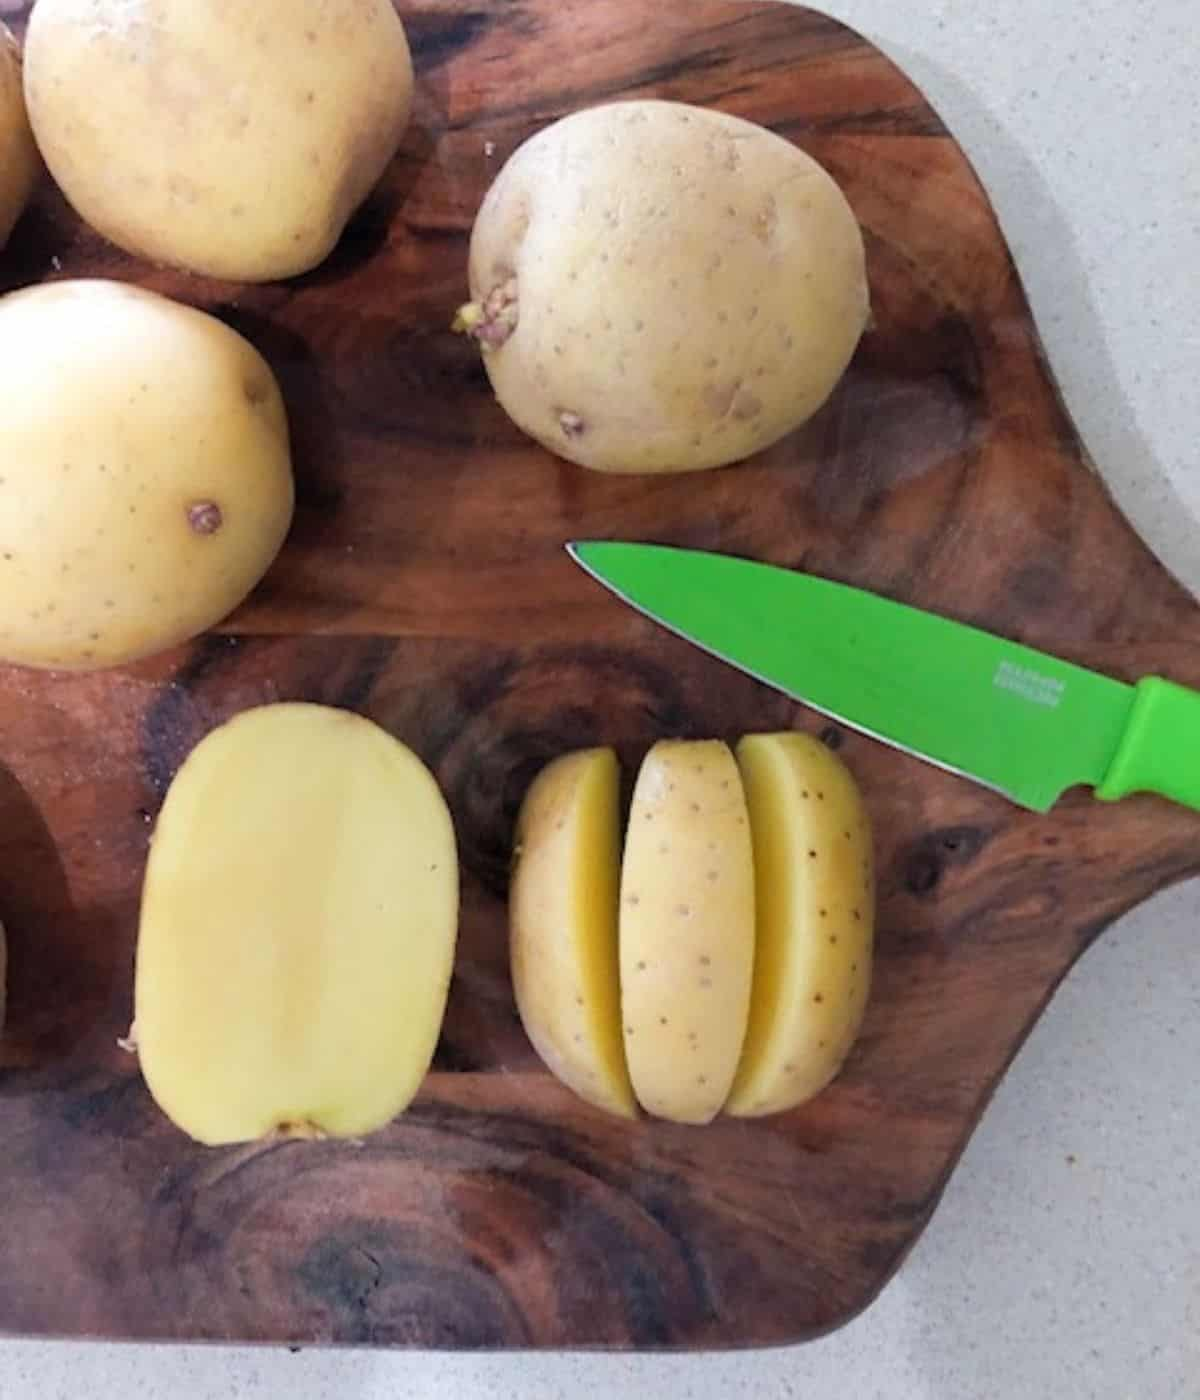 Showing how to cut potato wedges on a cutting board.